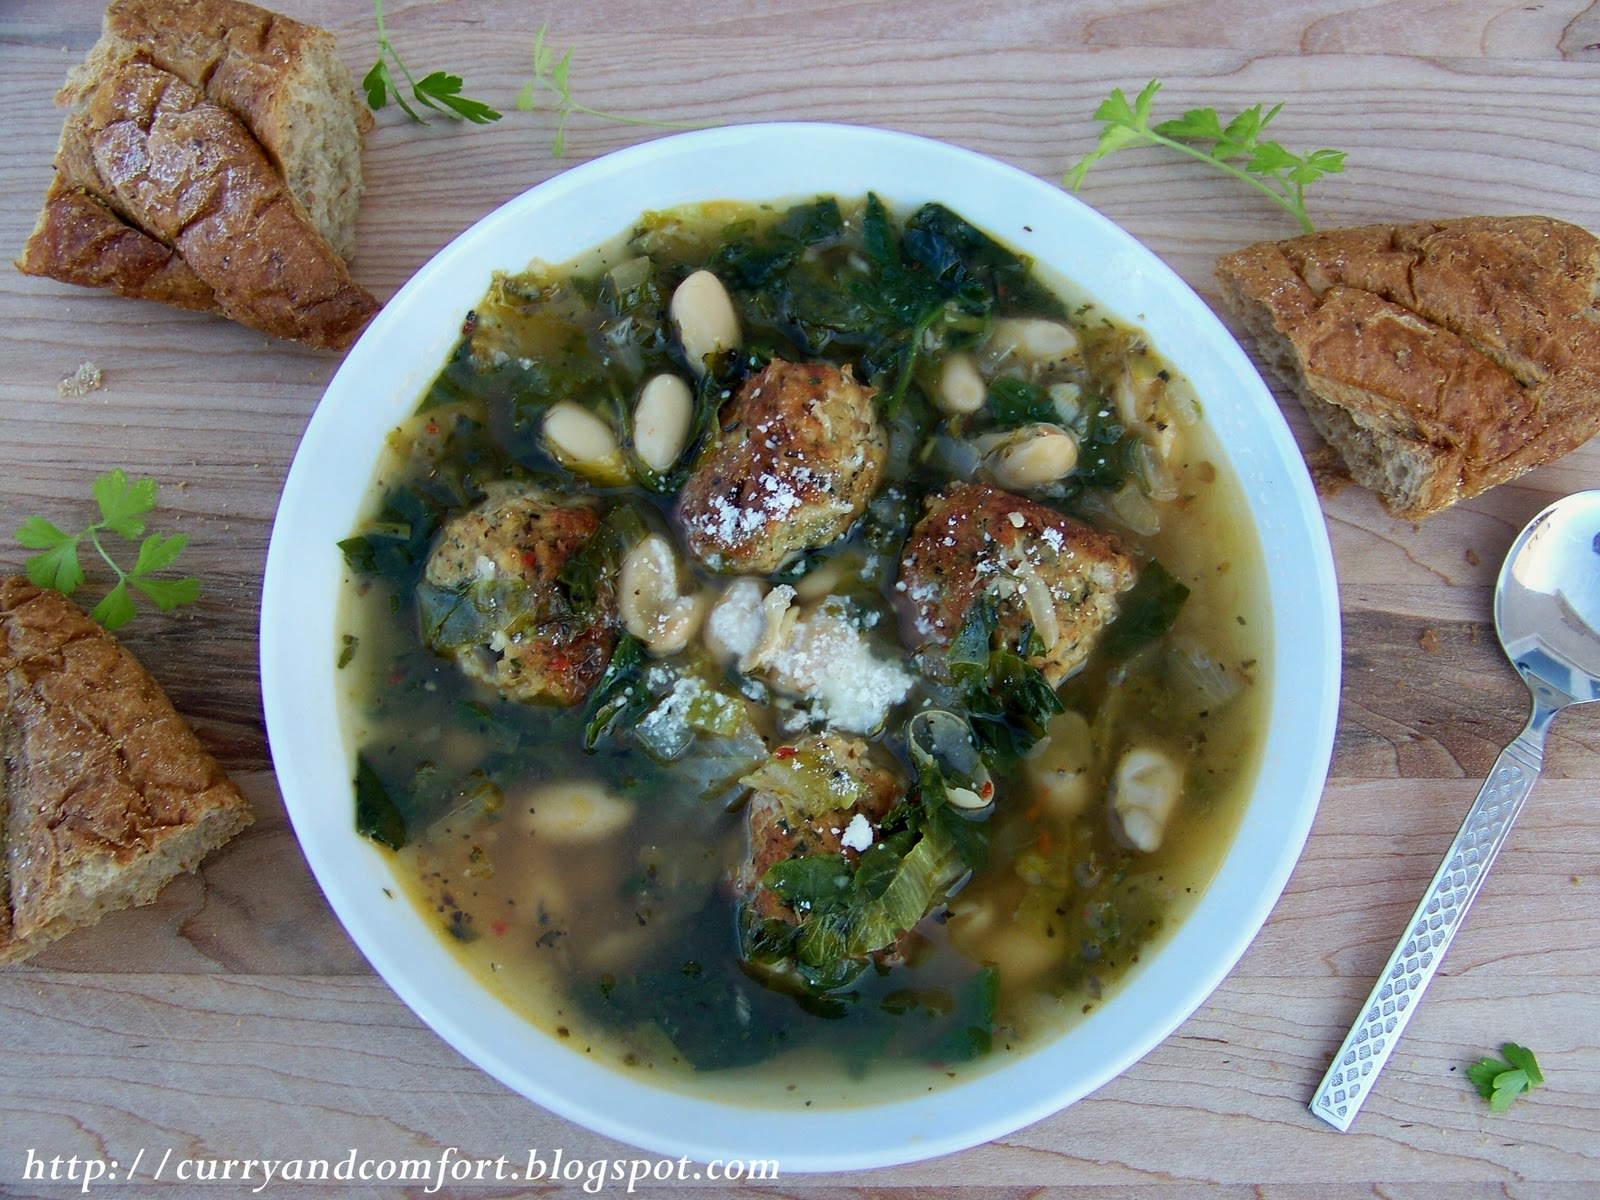 Curry and Comfort: Italian Escarole, Bean and Meatball Soup